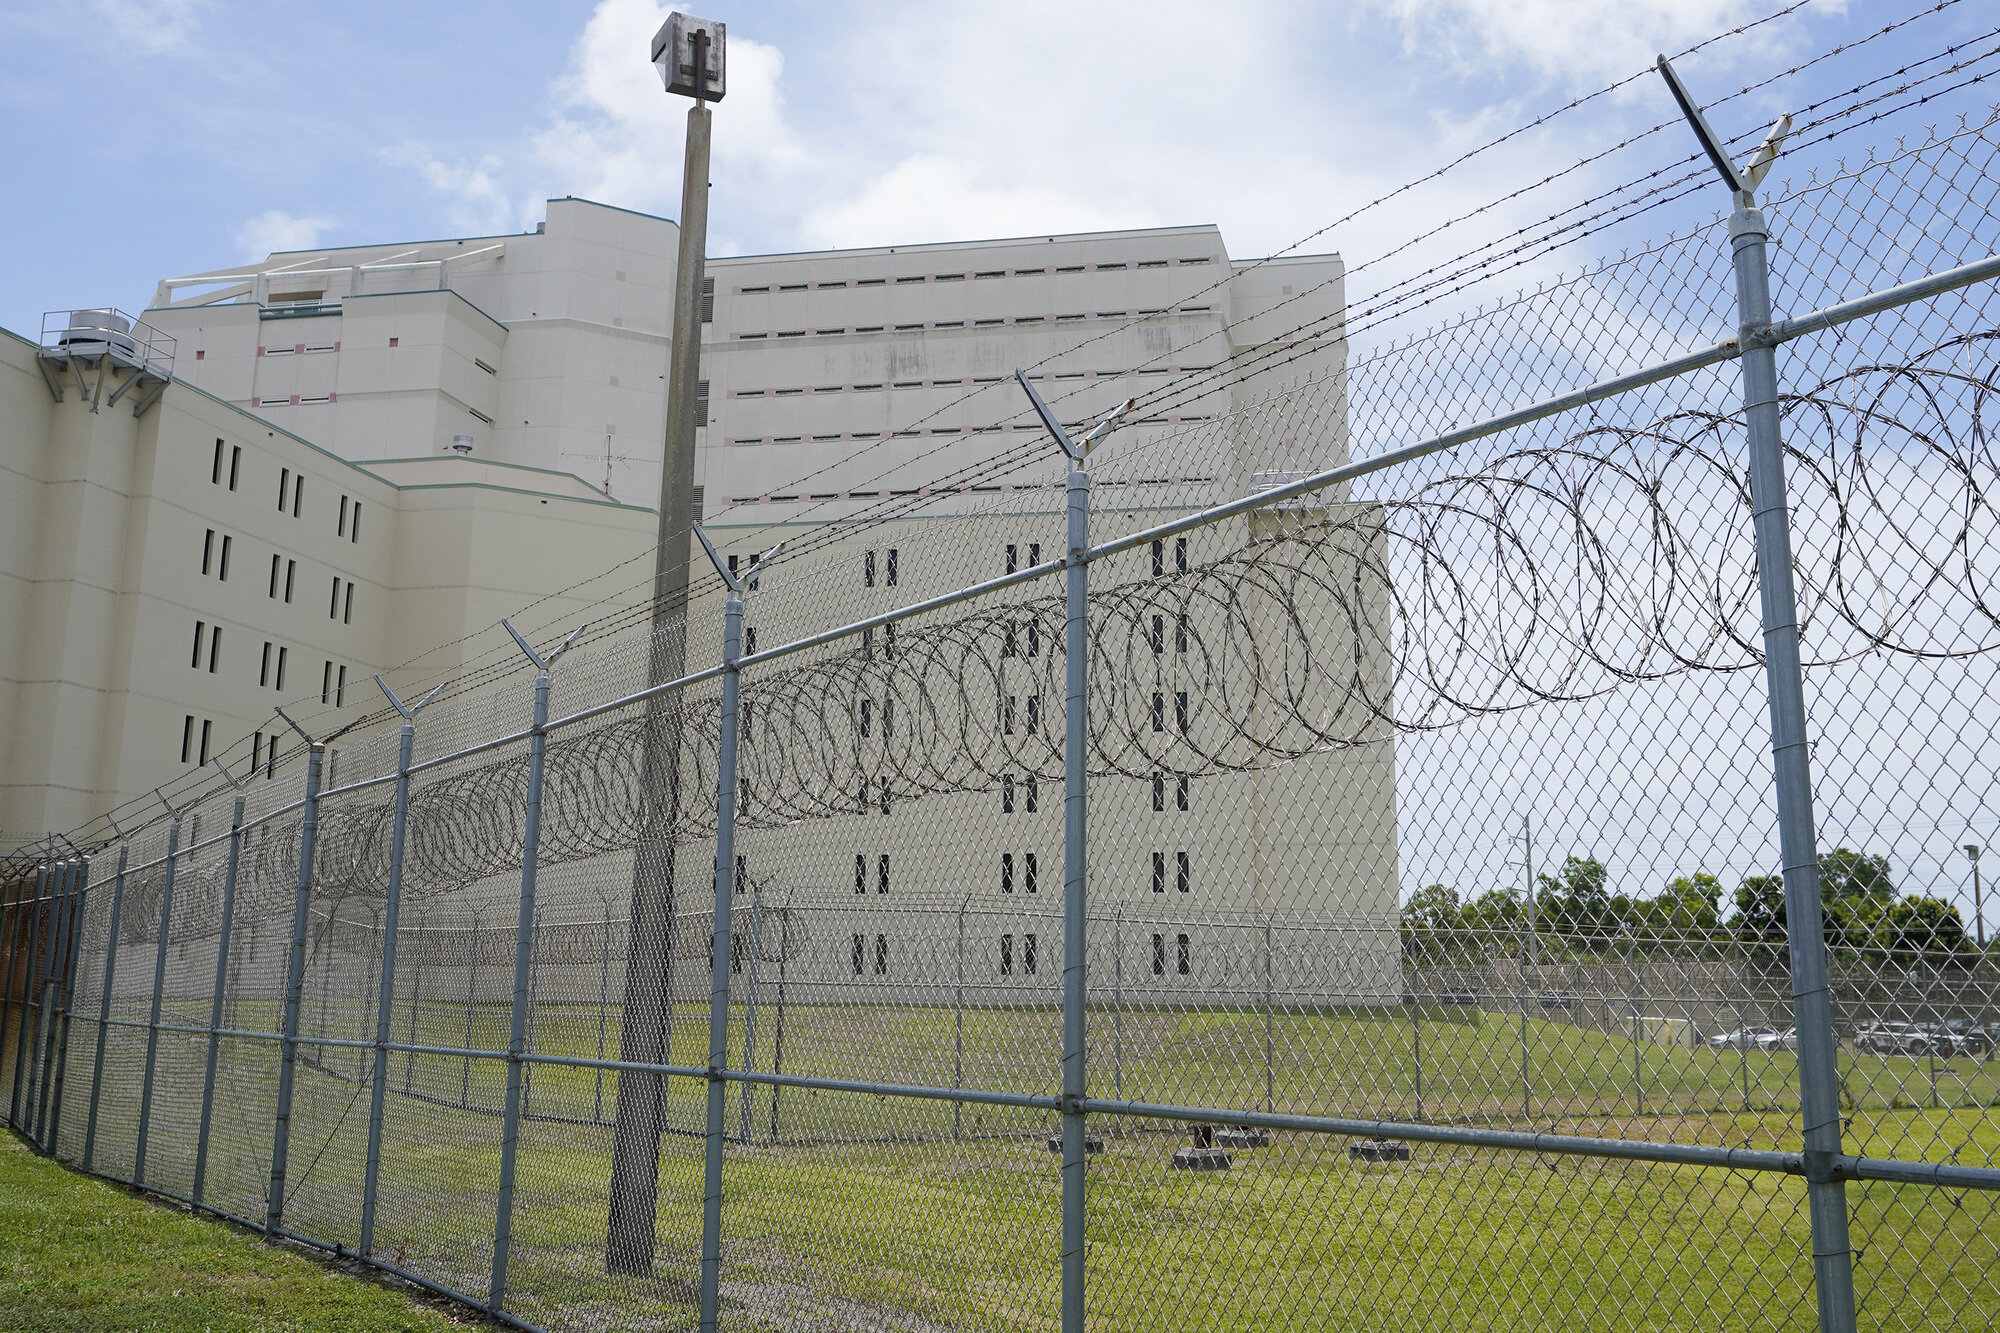 In Palm Beach County, Florida, the number of people in county jails, including the main detention center pictured here, dropped by nearly 250 during the pandemic.